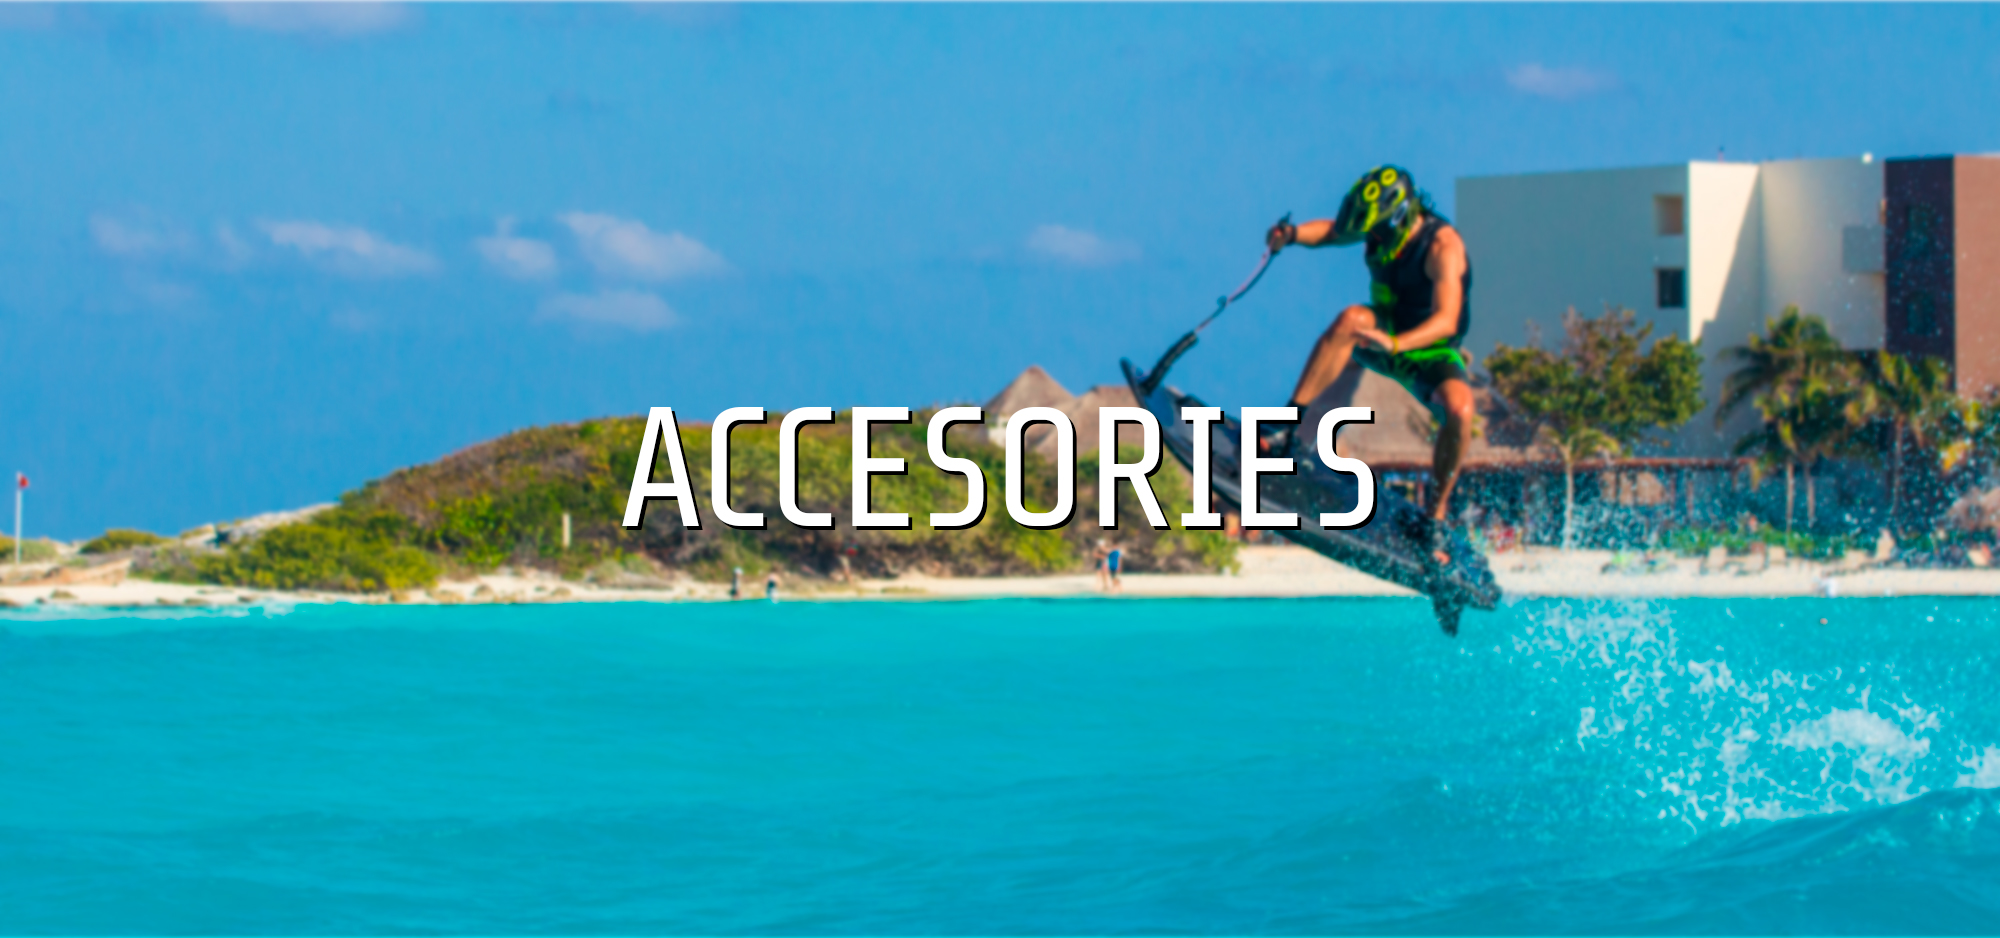 Accesories boards jump